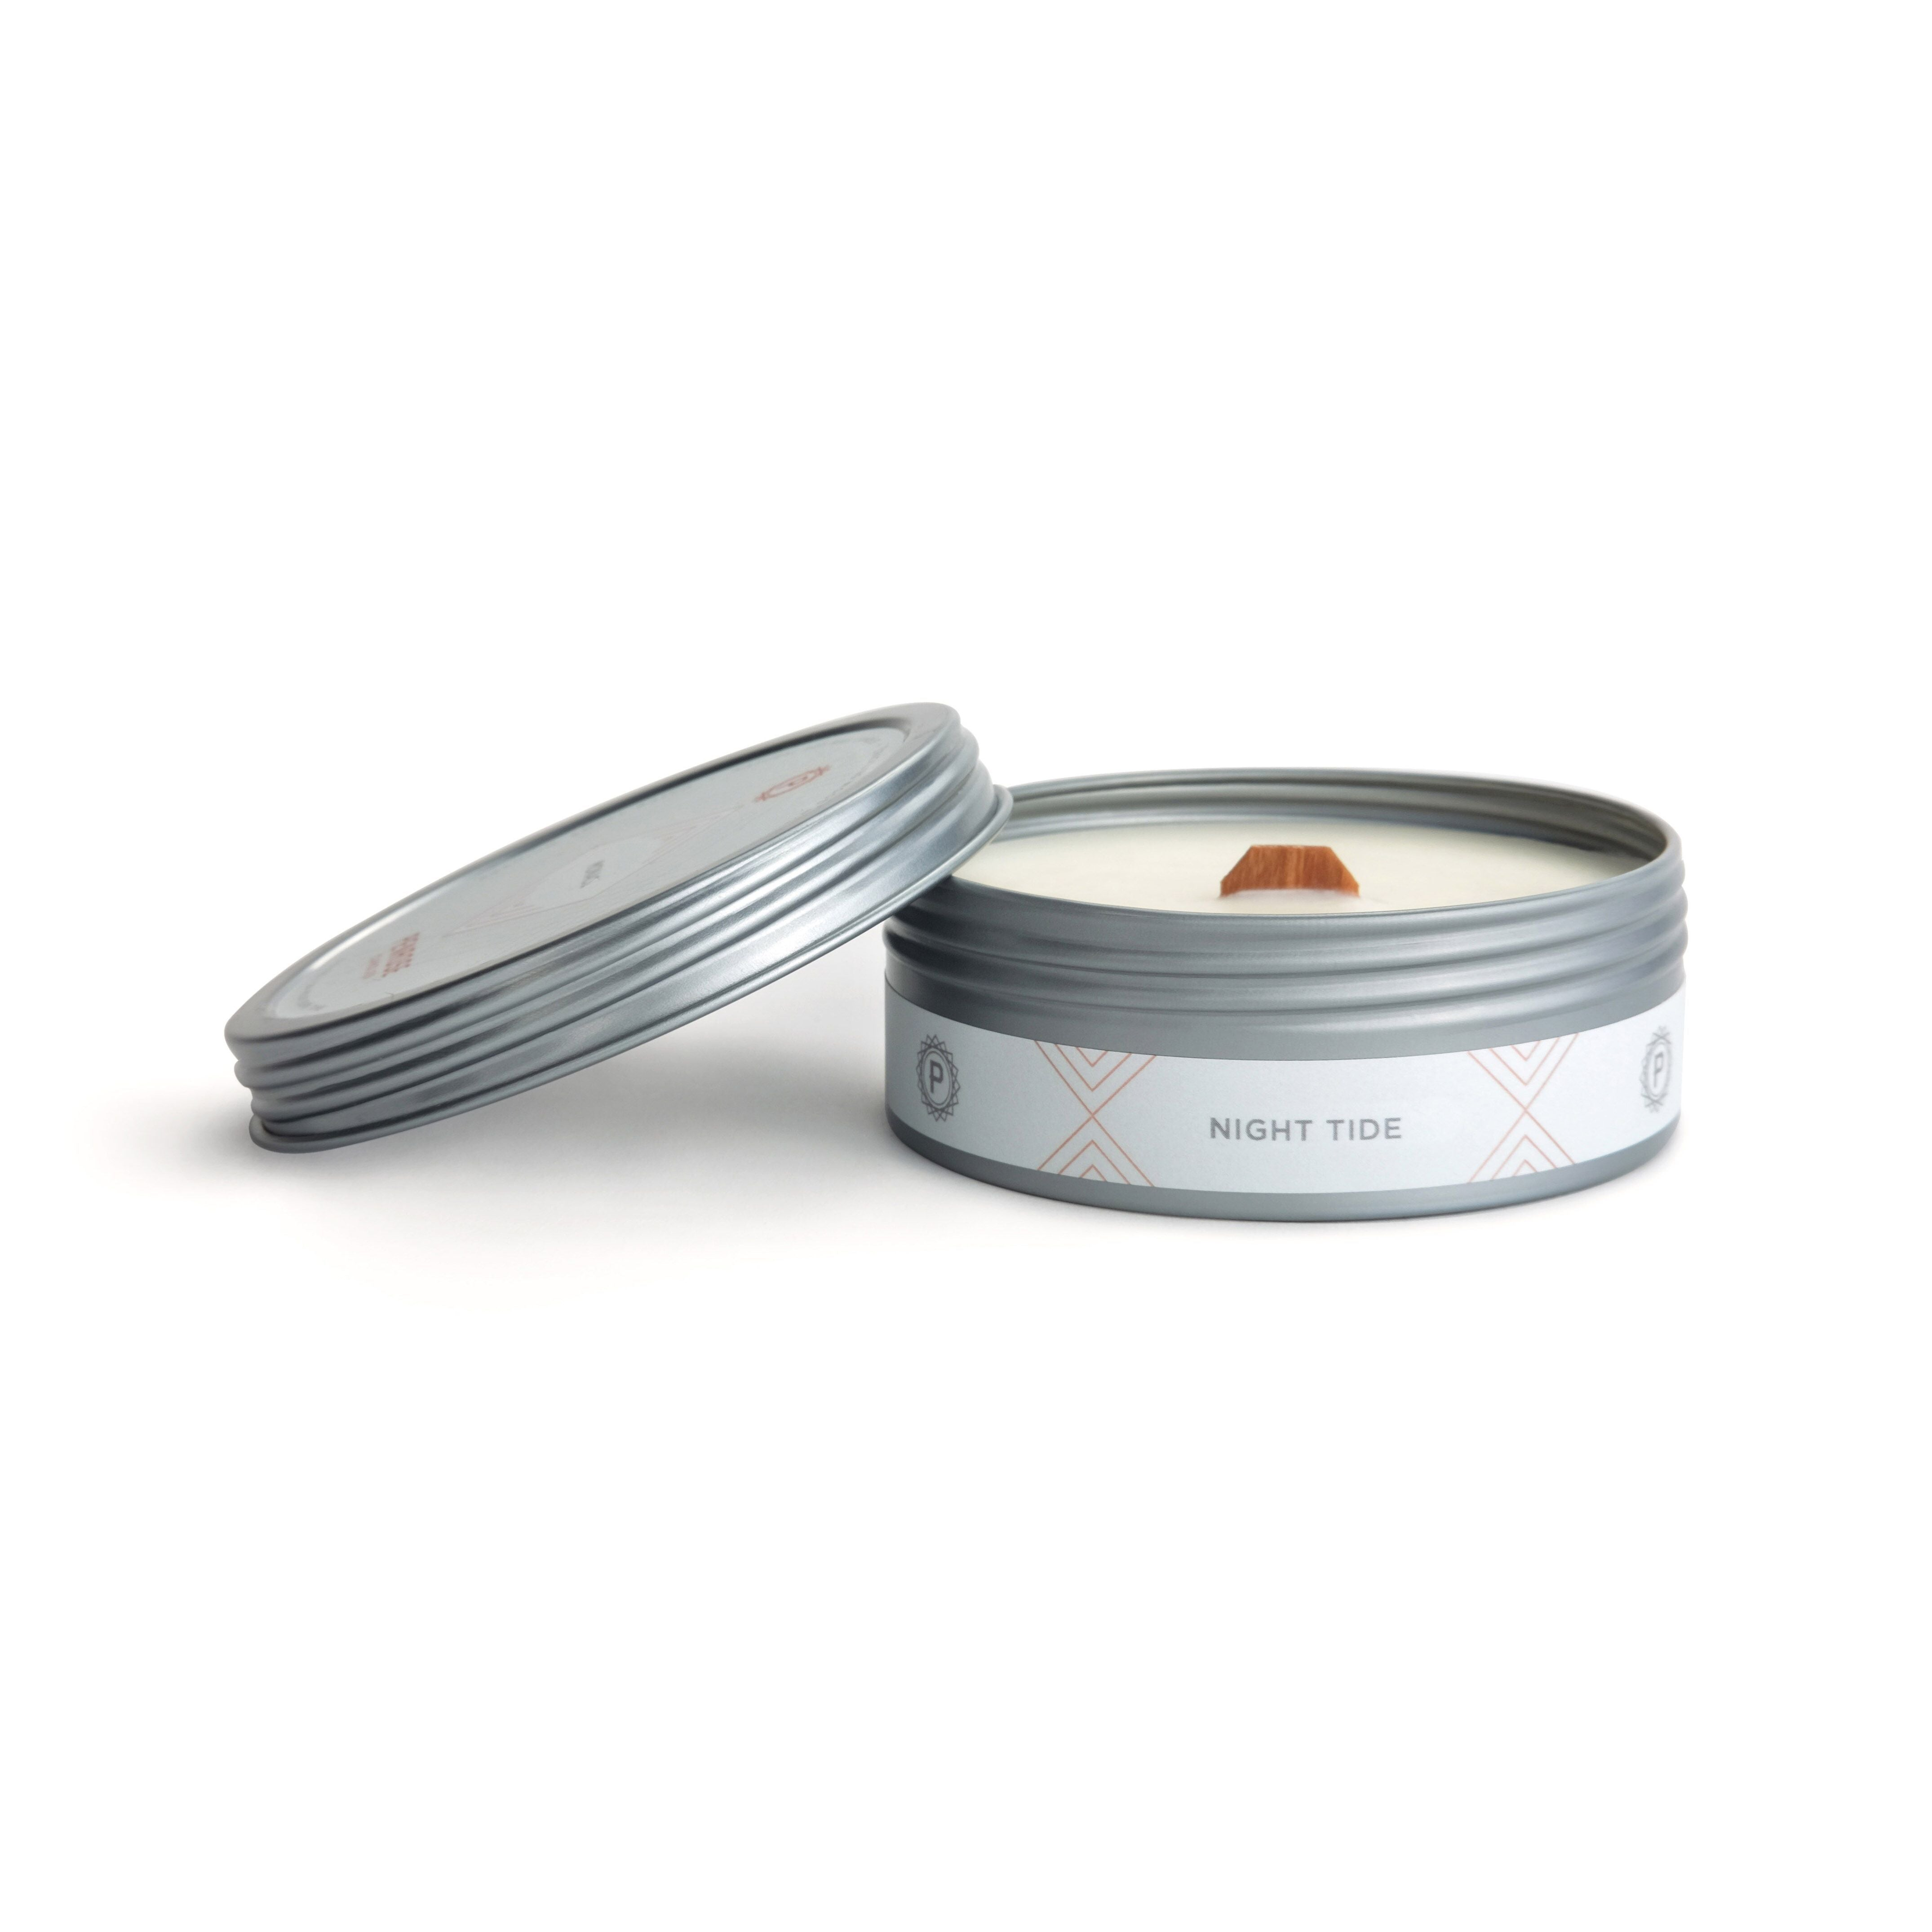 Night Tide Travel Candle